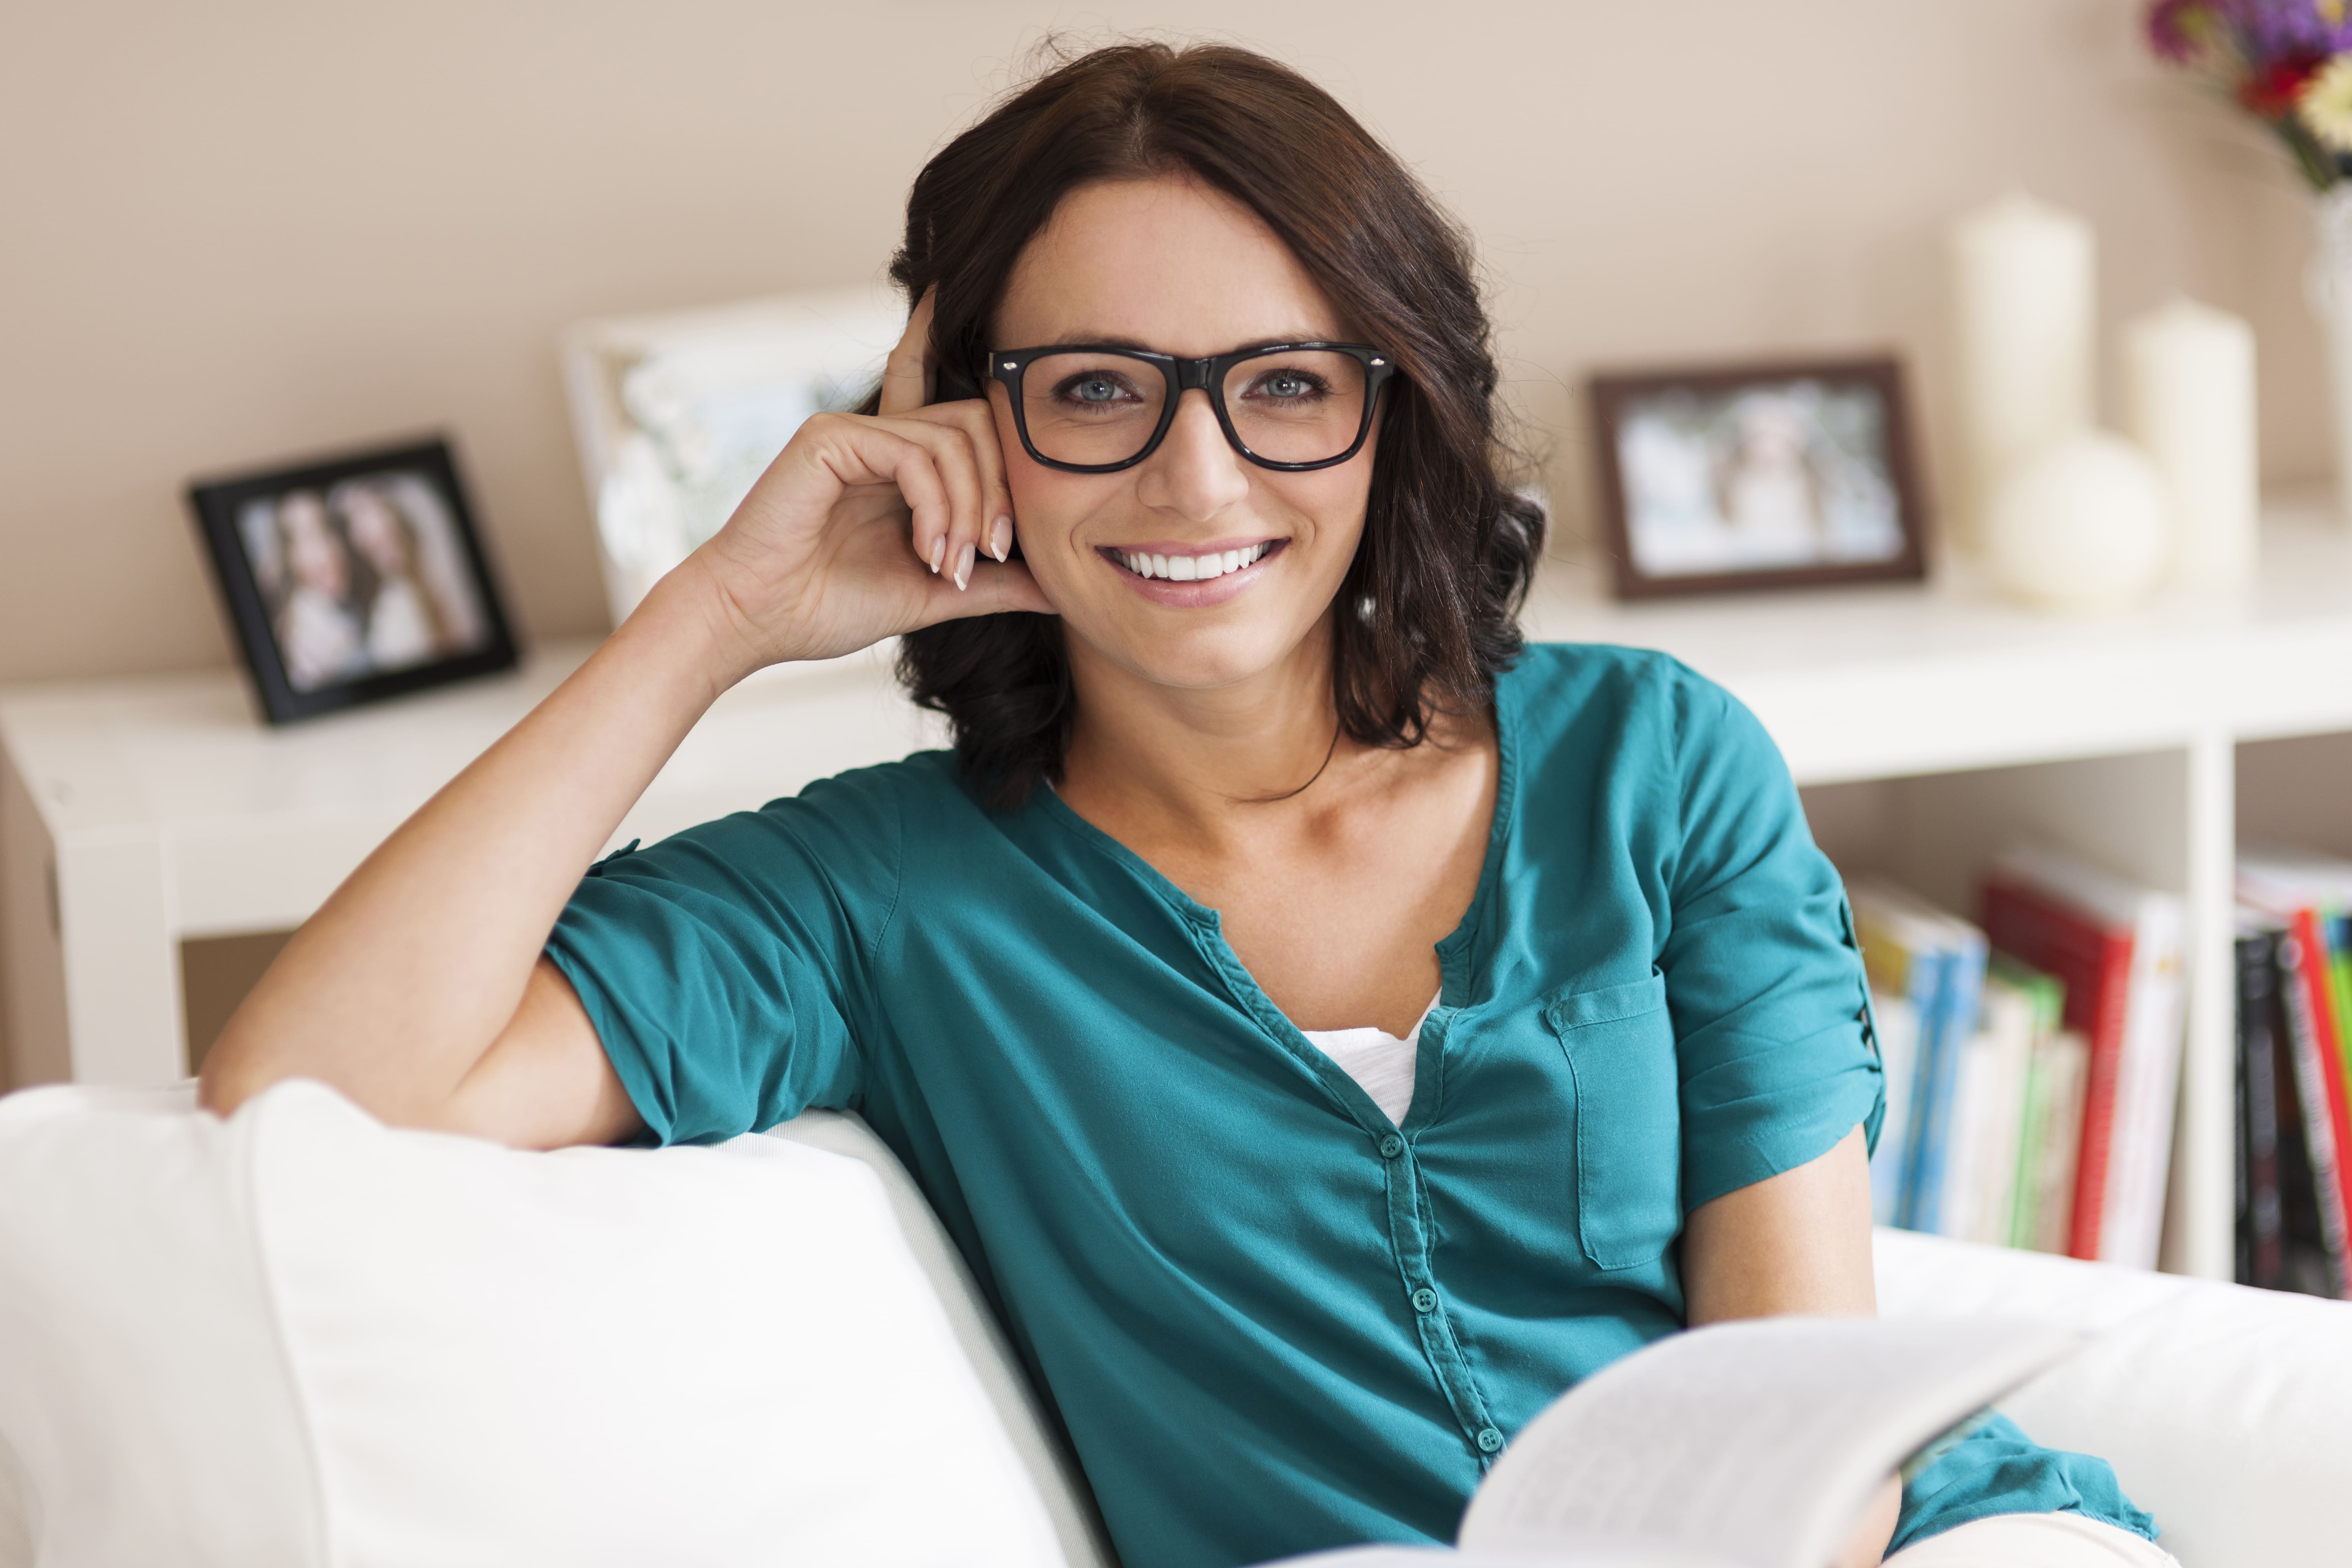 Eyeglass frame size guide: How to find glasses that fit?